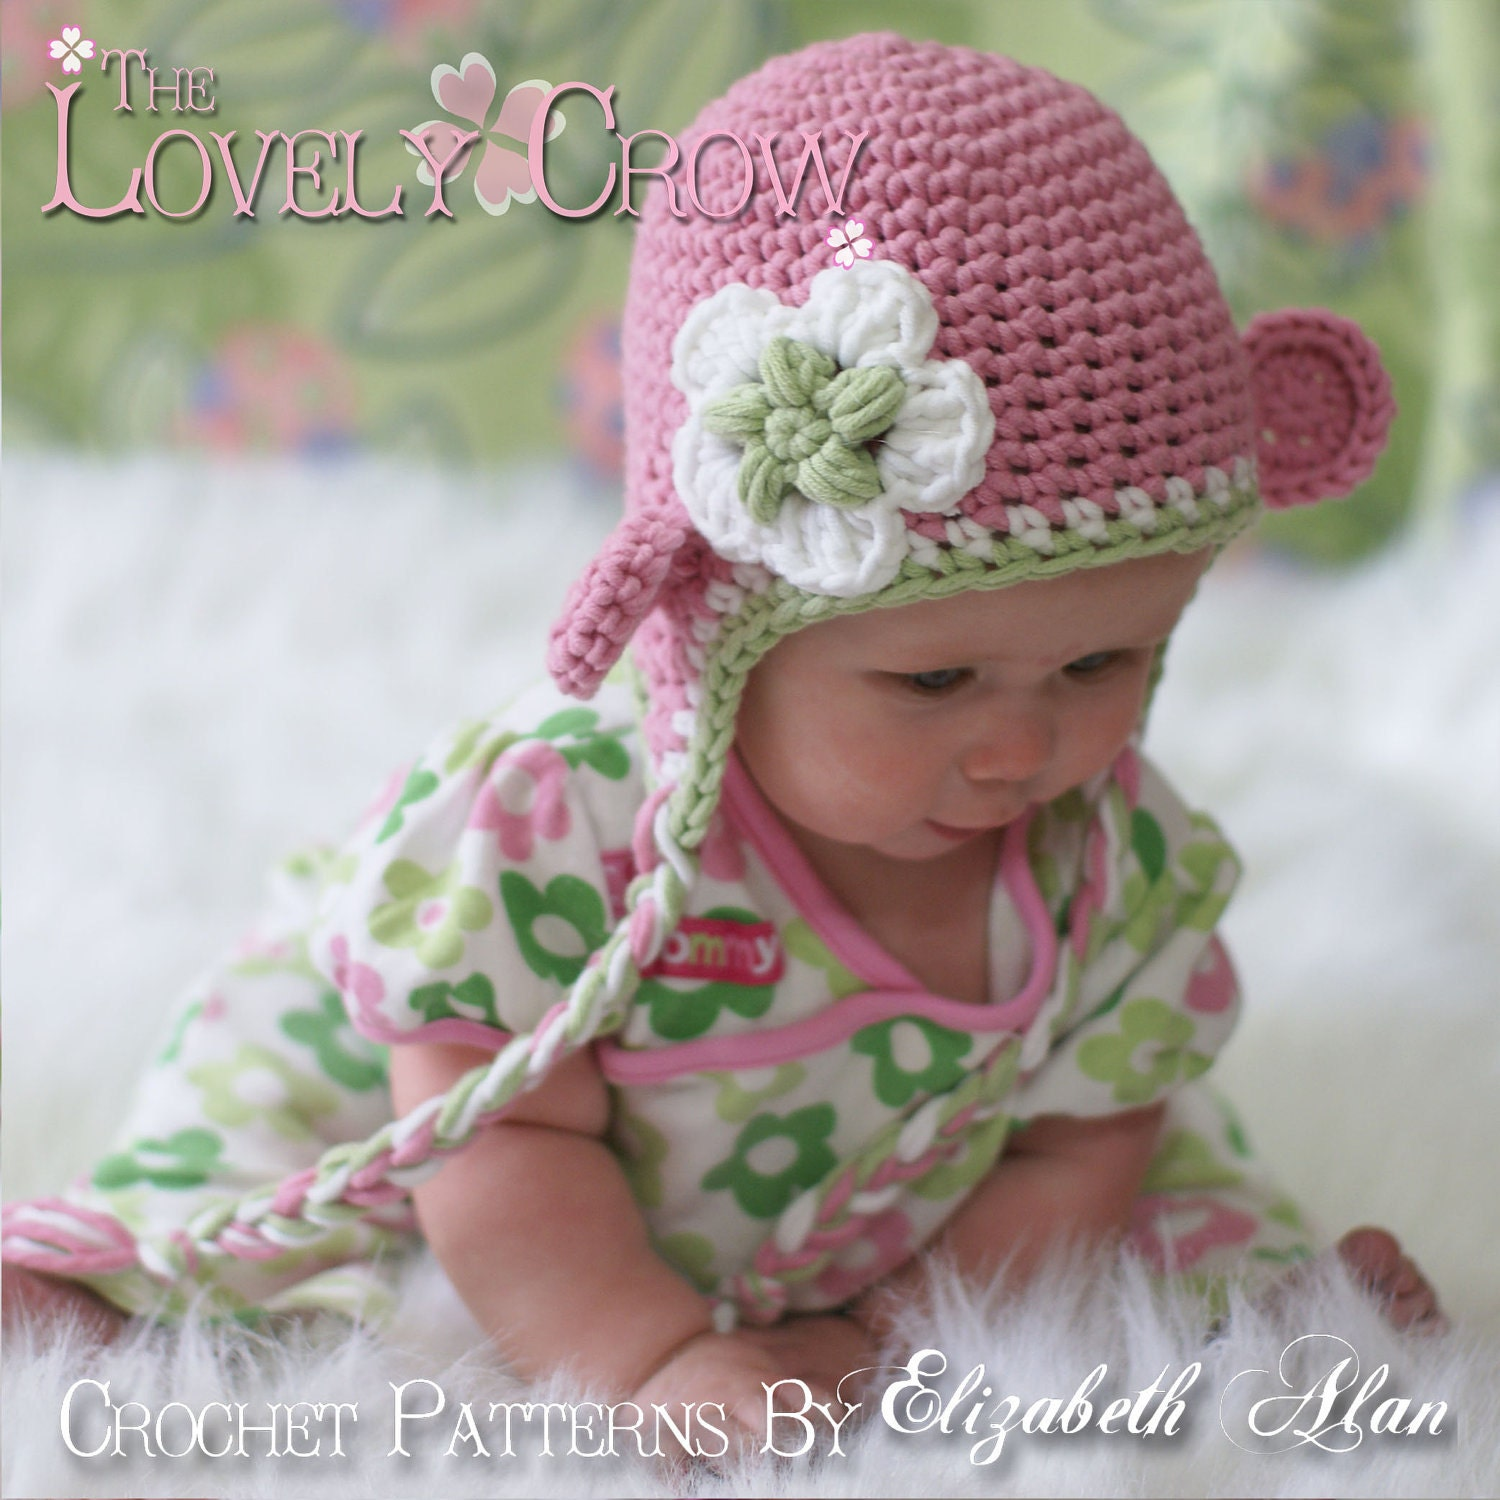 Crochet Patterns And Yarn : CROCHET PATTERNS FOR BULKY YARN - Crochet Club